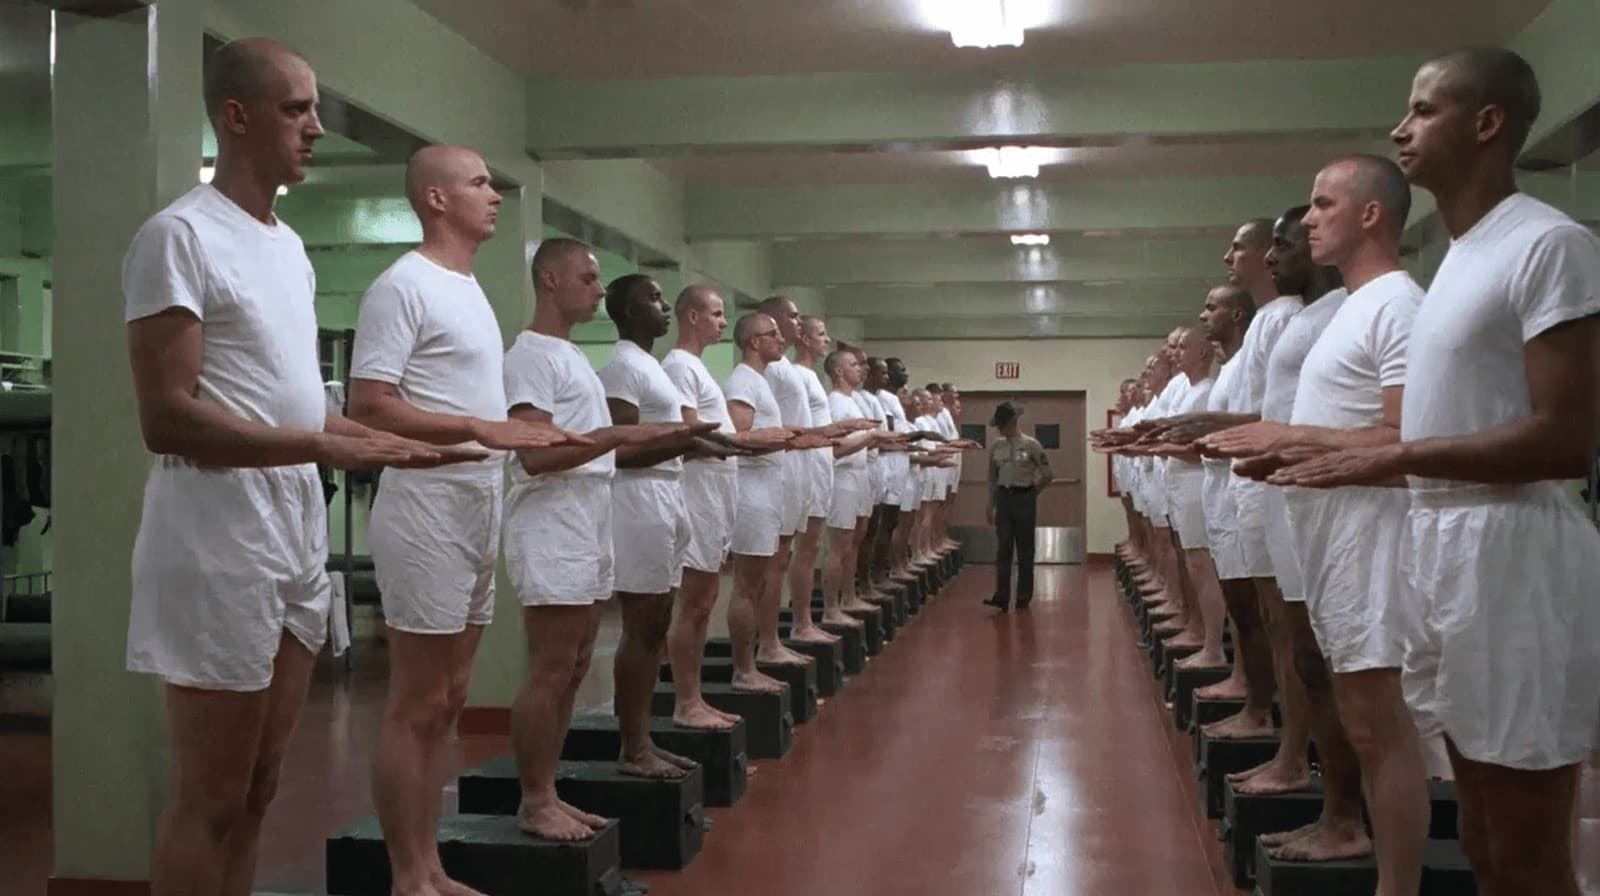 Best Stanley Kubrick Movies - Kubricks Use of Symmetry - Full Metal Jacket